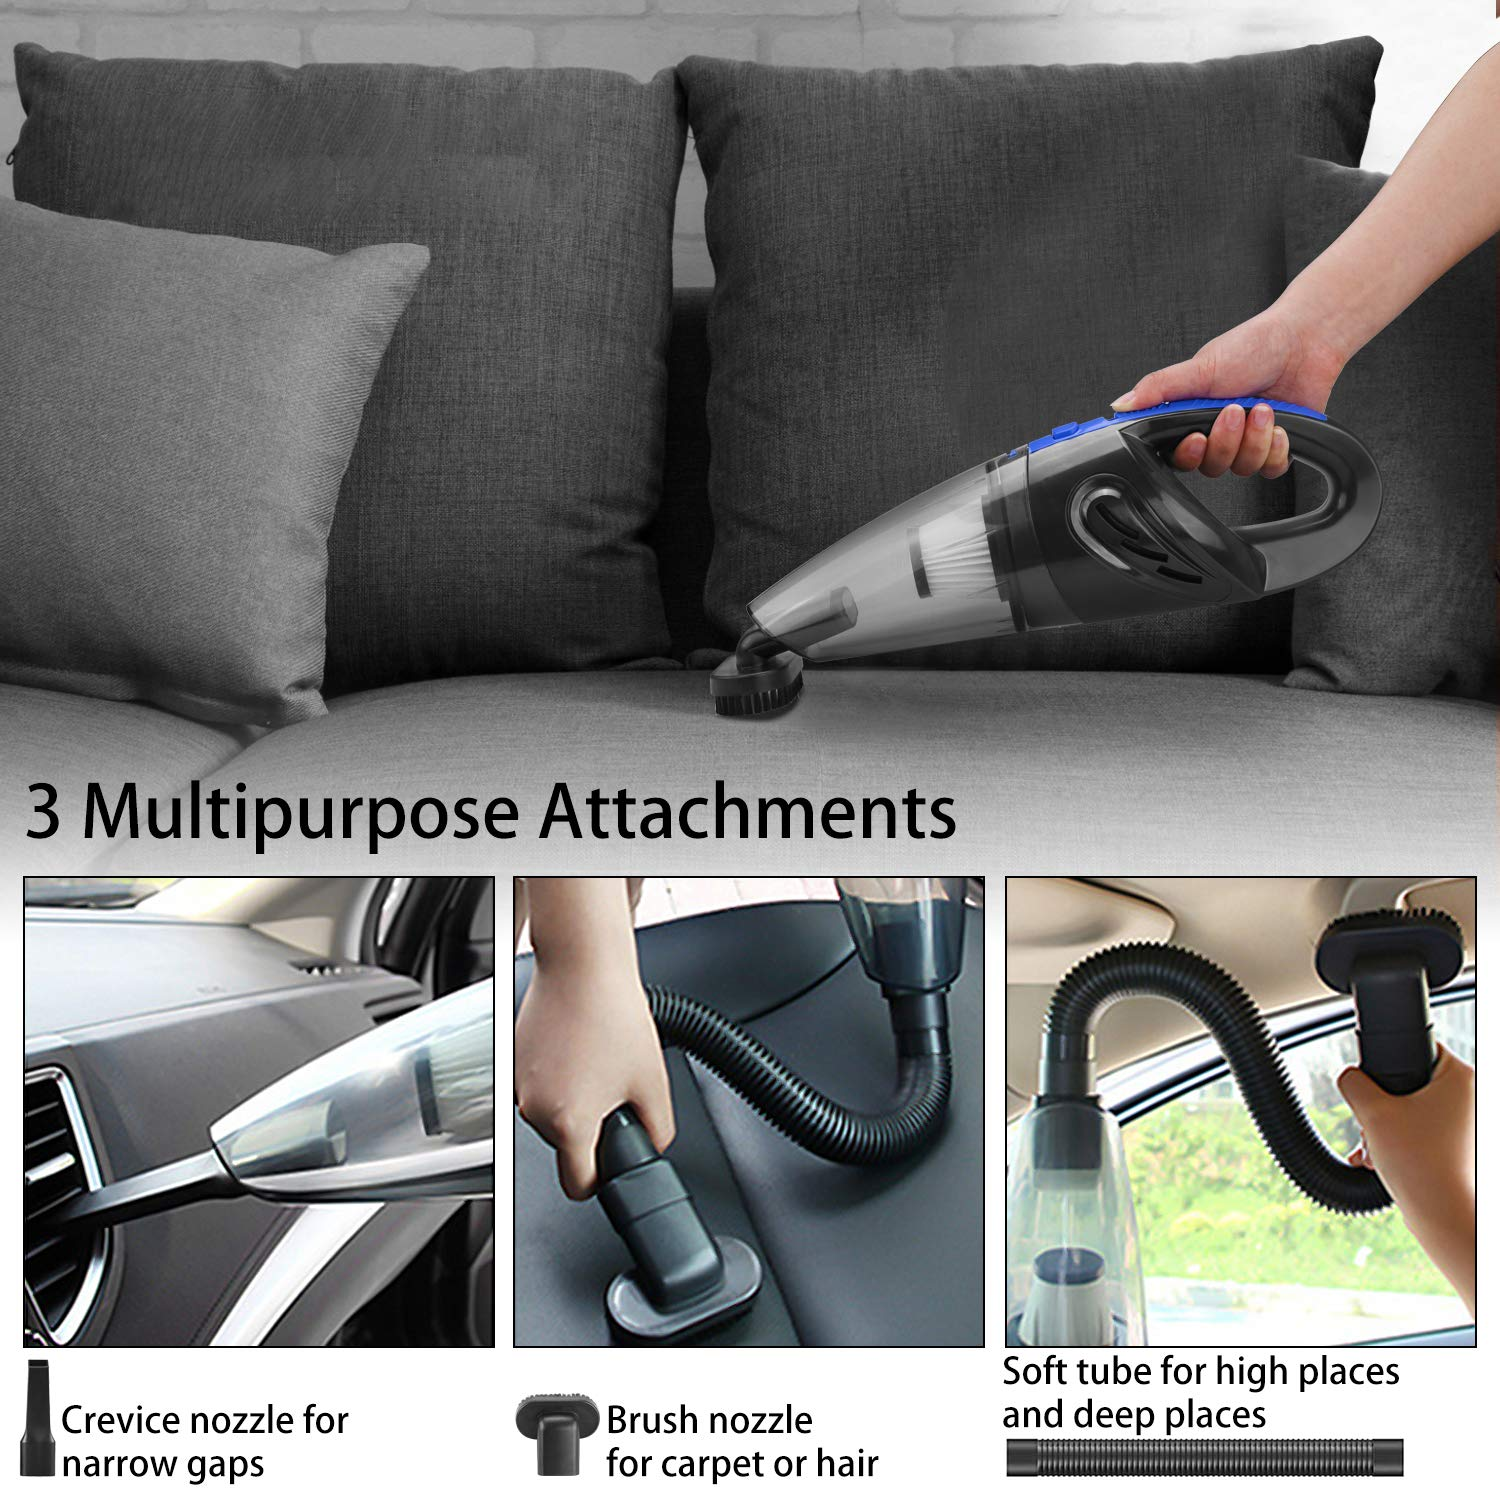 Tabiger Handheld Vacuums Cordless 2019 New Updated Lightweight Hand Held Vacuum Rechargeable Car Vacuum Cleaner with 3000 Pa Powerful Suction for Home Stairs Car Dust Pet Hair